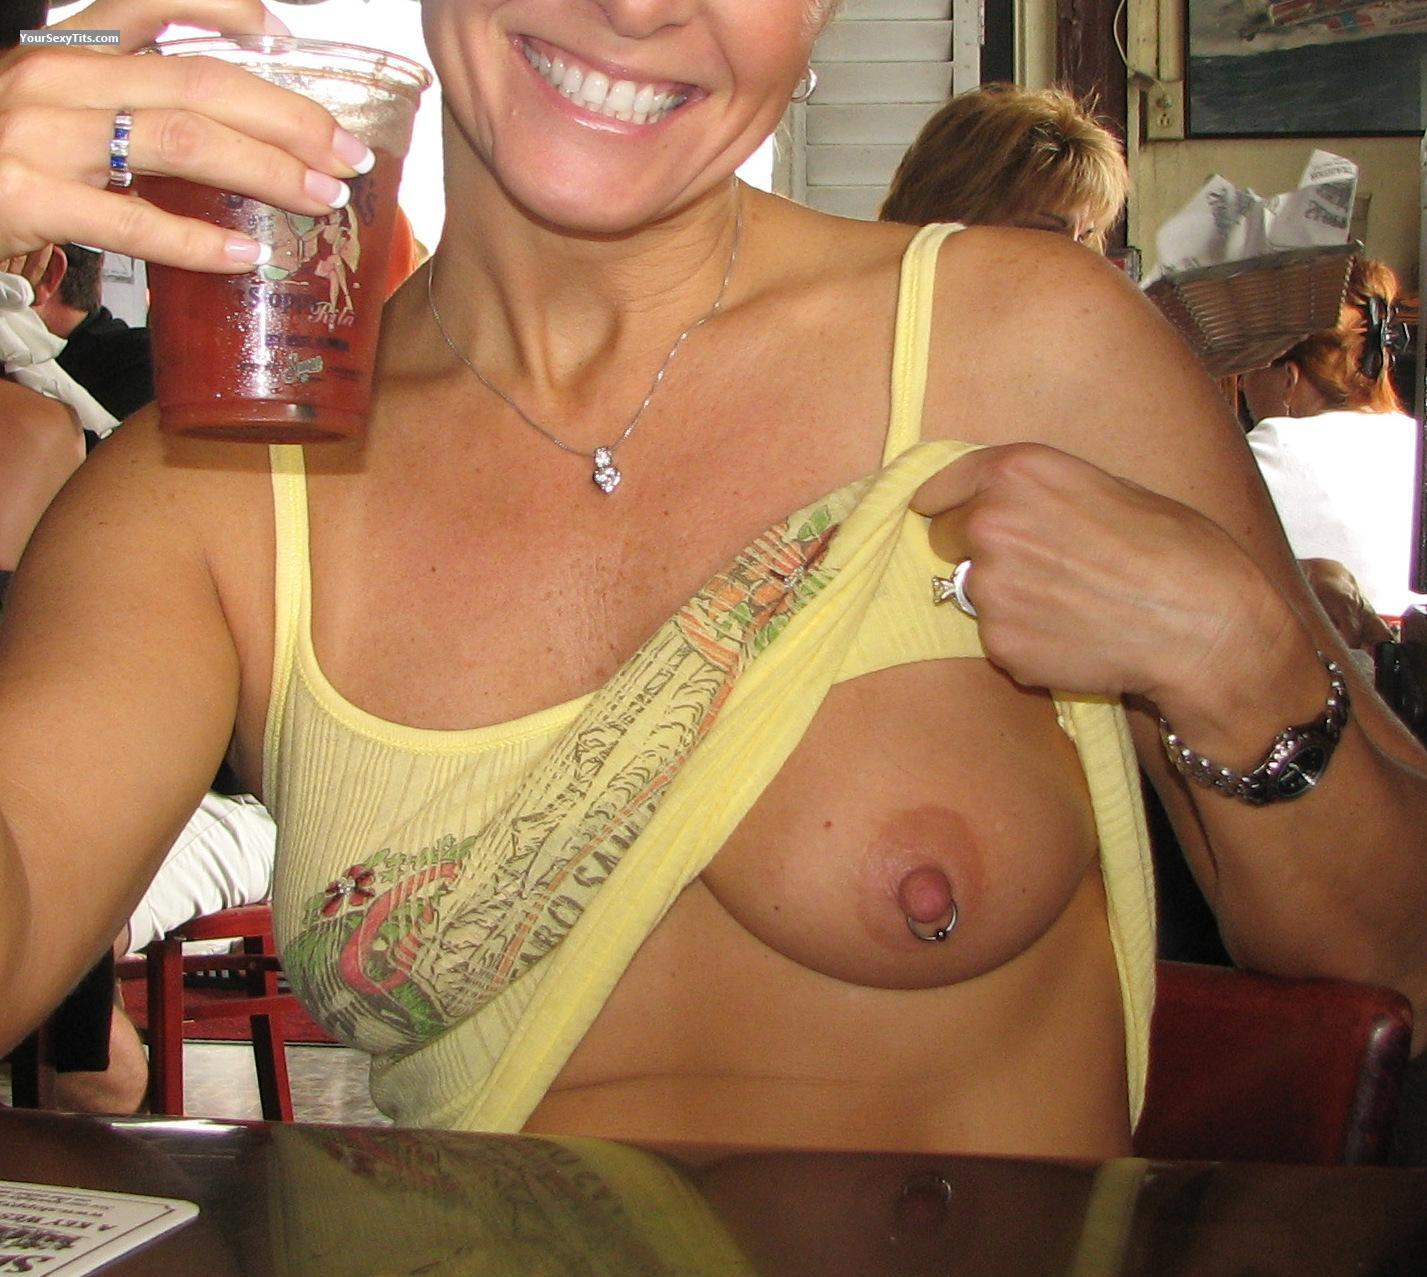 Tit Flash: Medium Tits - Nora from United StatesPierced Nipples